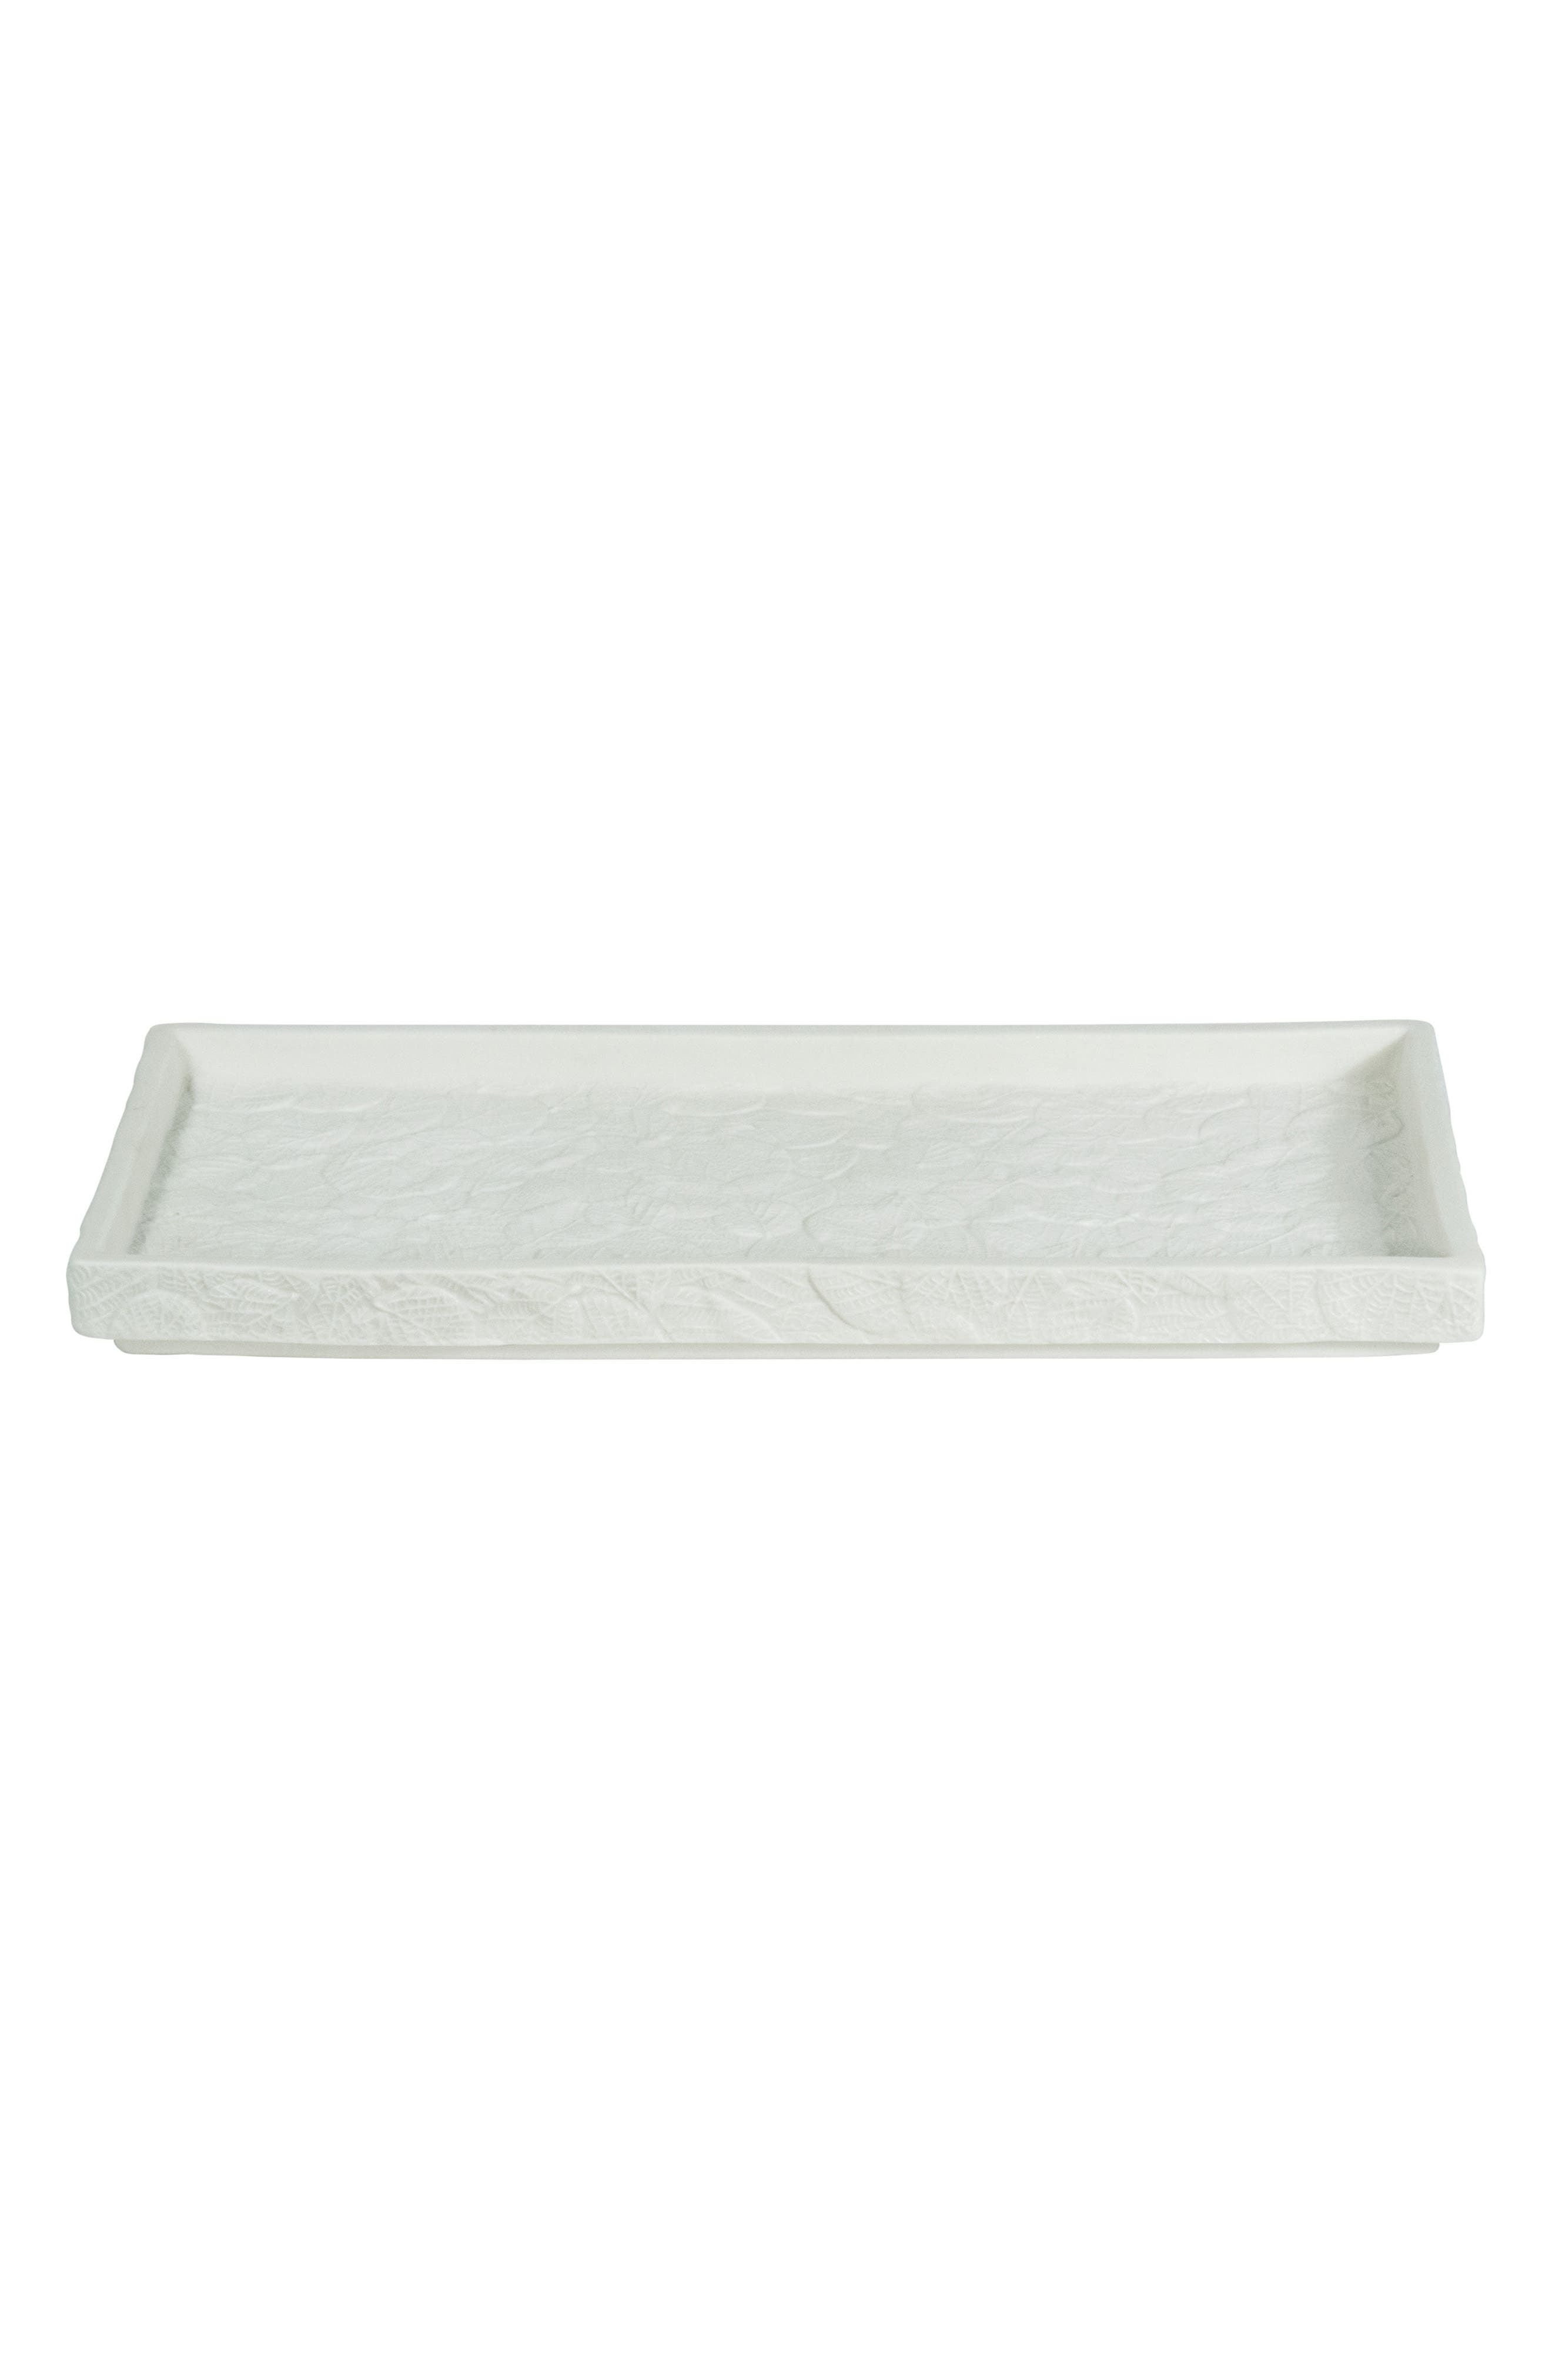 Botanical Leaf Porcelain Tray,                         Main,                         color, WHITE